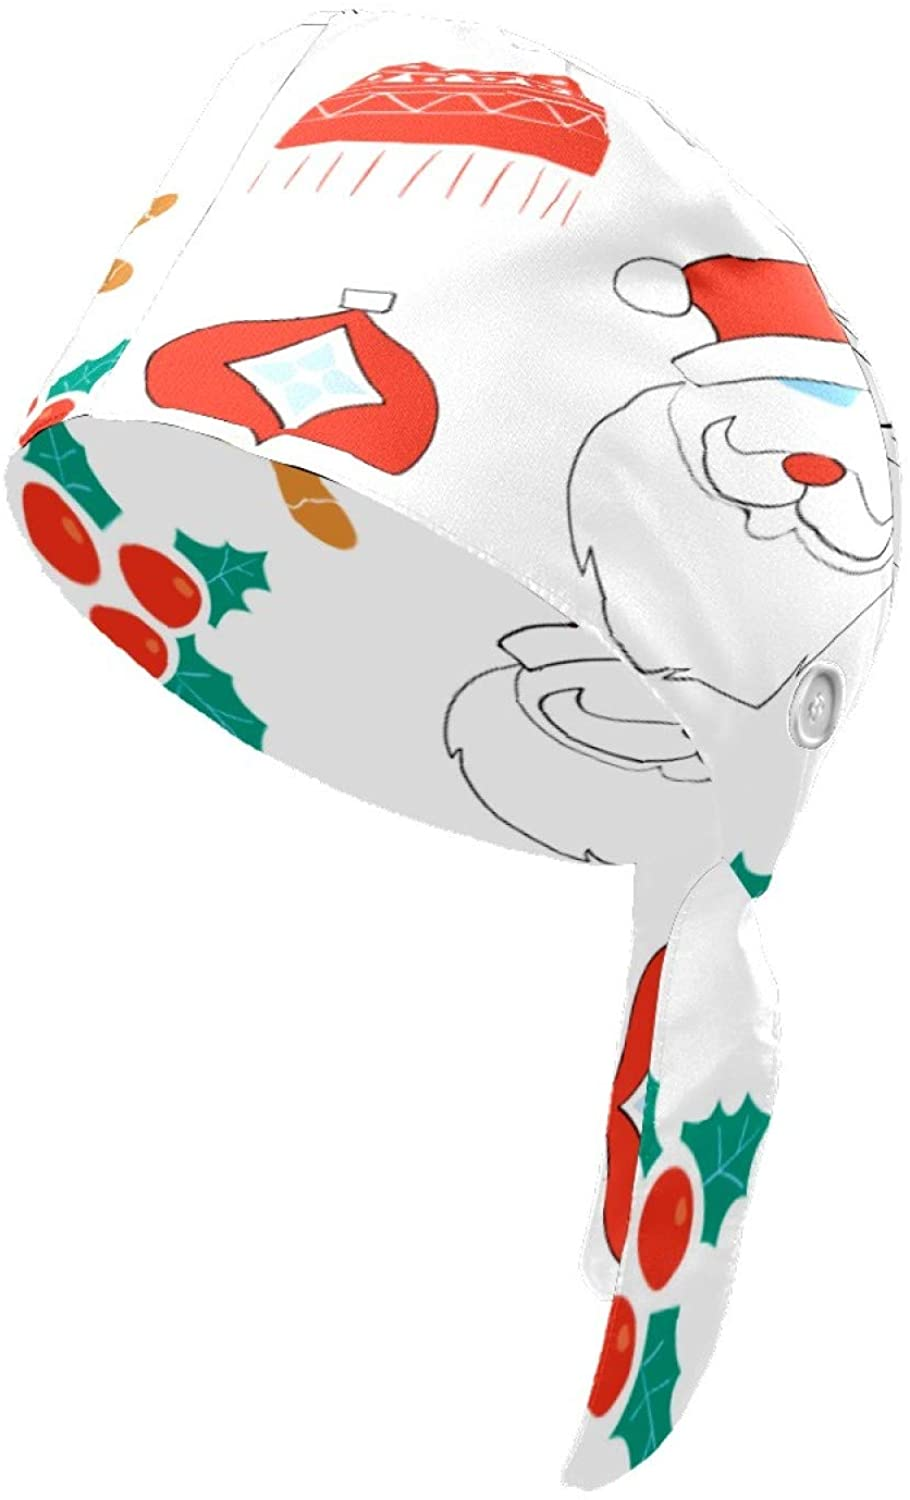 Cute Scarf Hat Women Working Cap Head Scarf for Men Printed Hats with Button for Men and Women Santa Claus Bird Hat Hair Cover with Button Women Hats and Scarves Bouffant Caps Funny Tie Back Hat